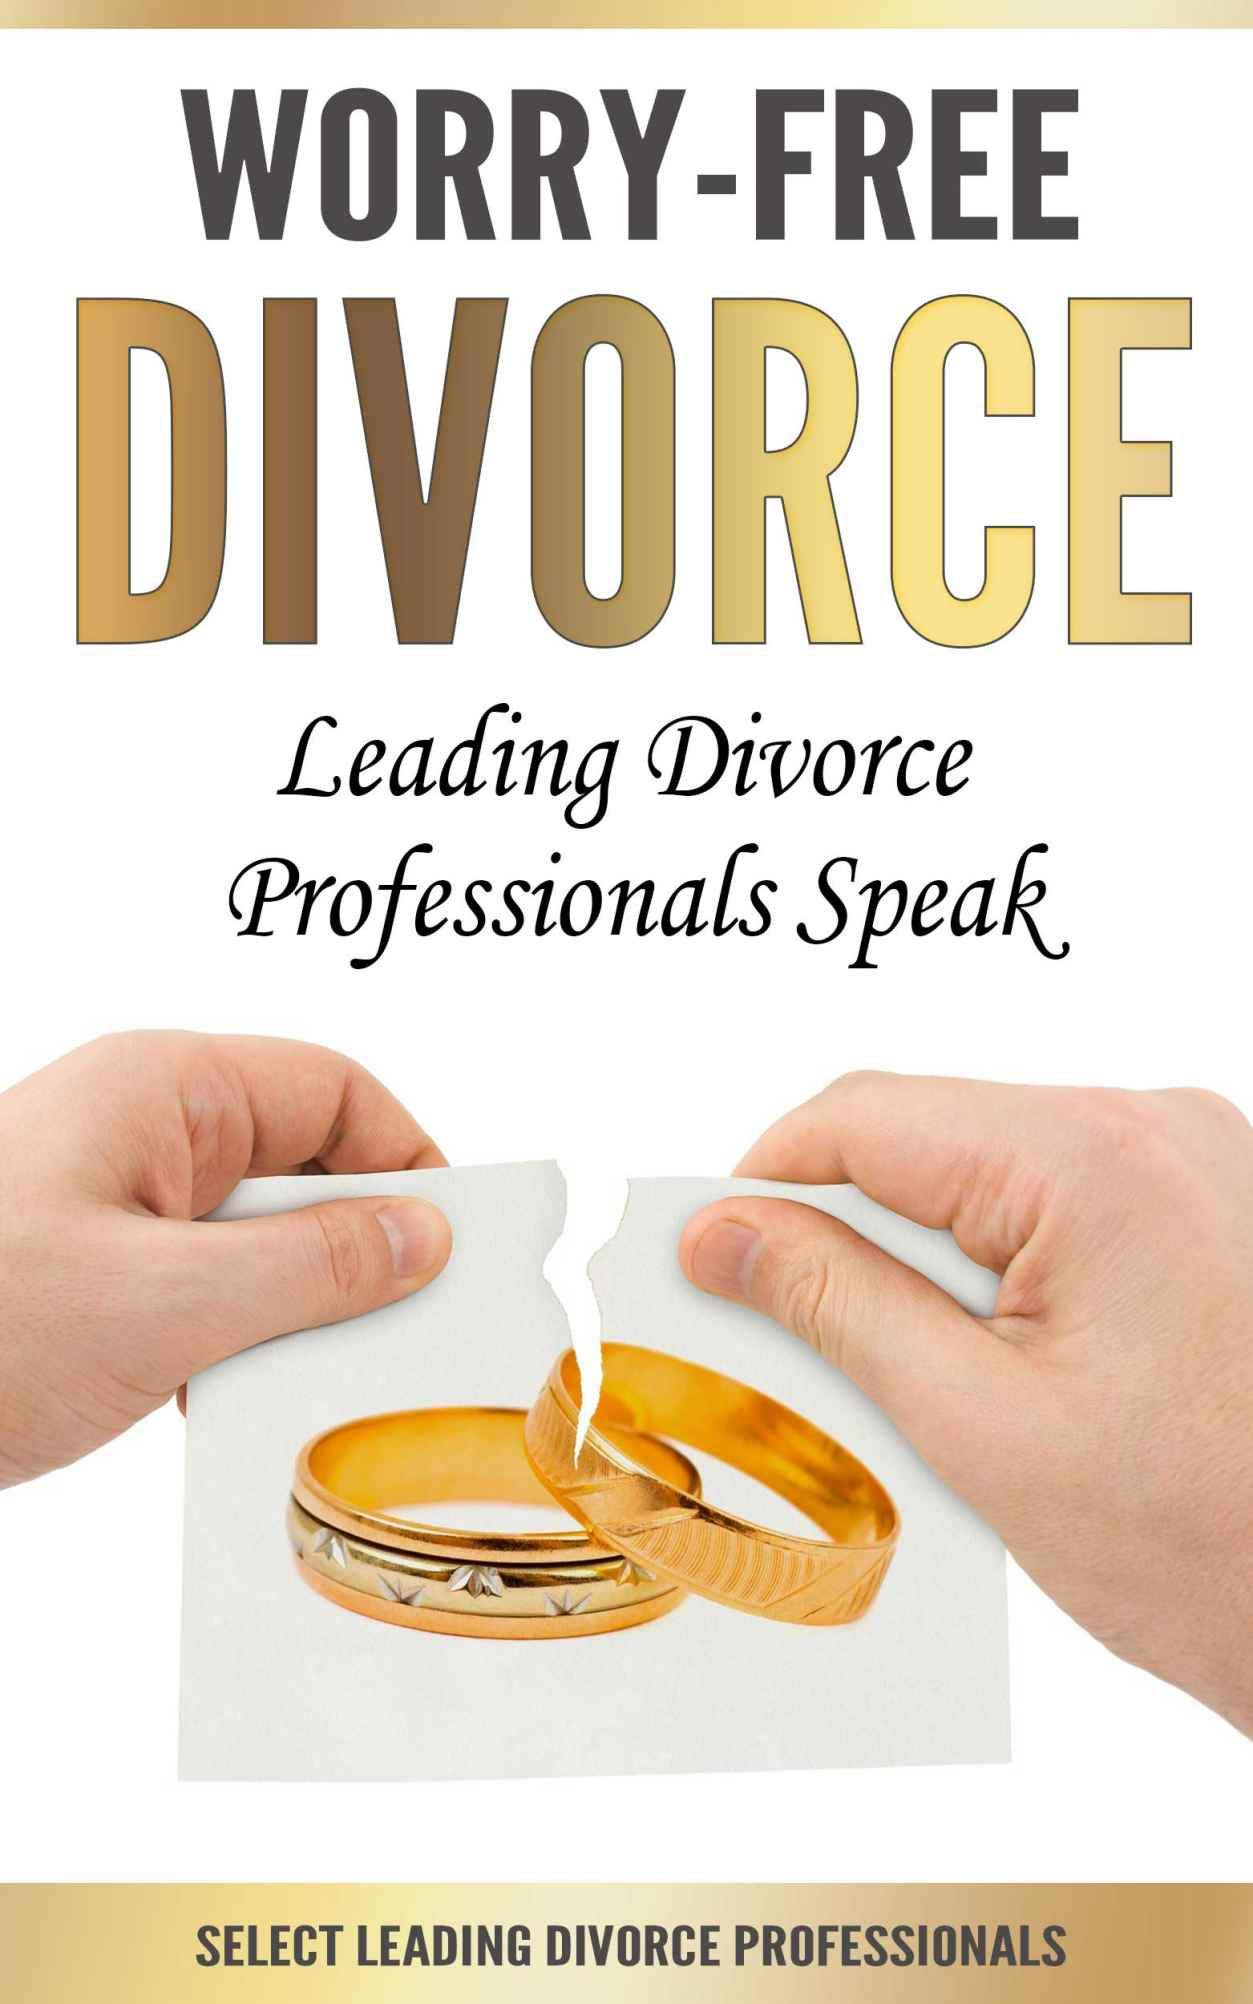 Worry-Free Divorce